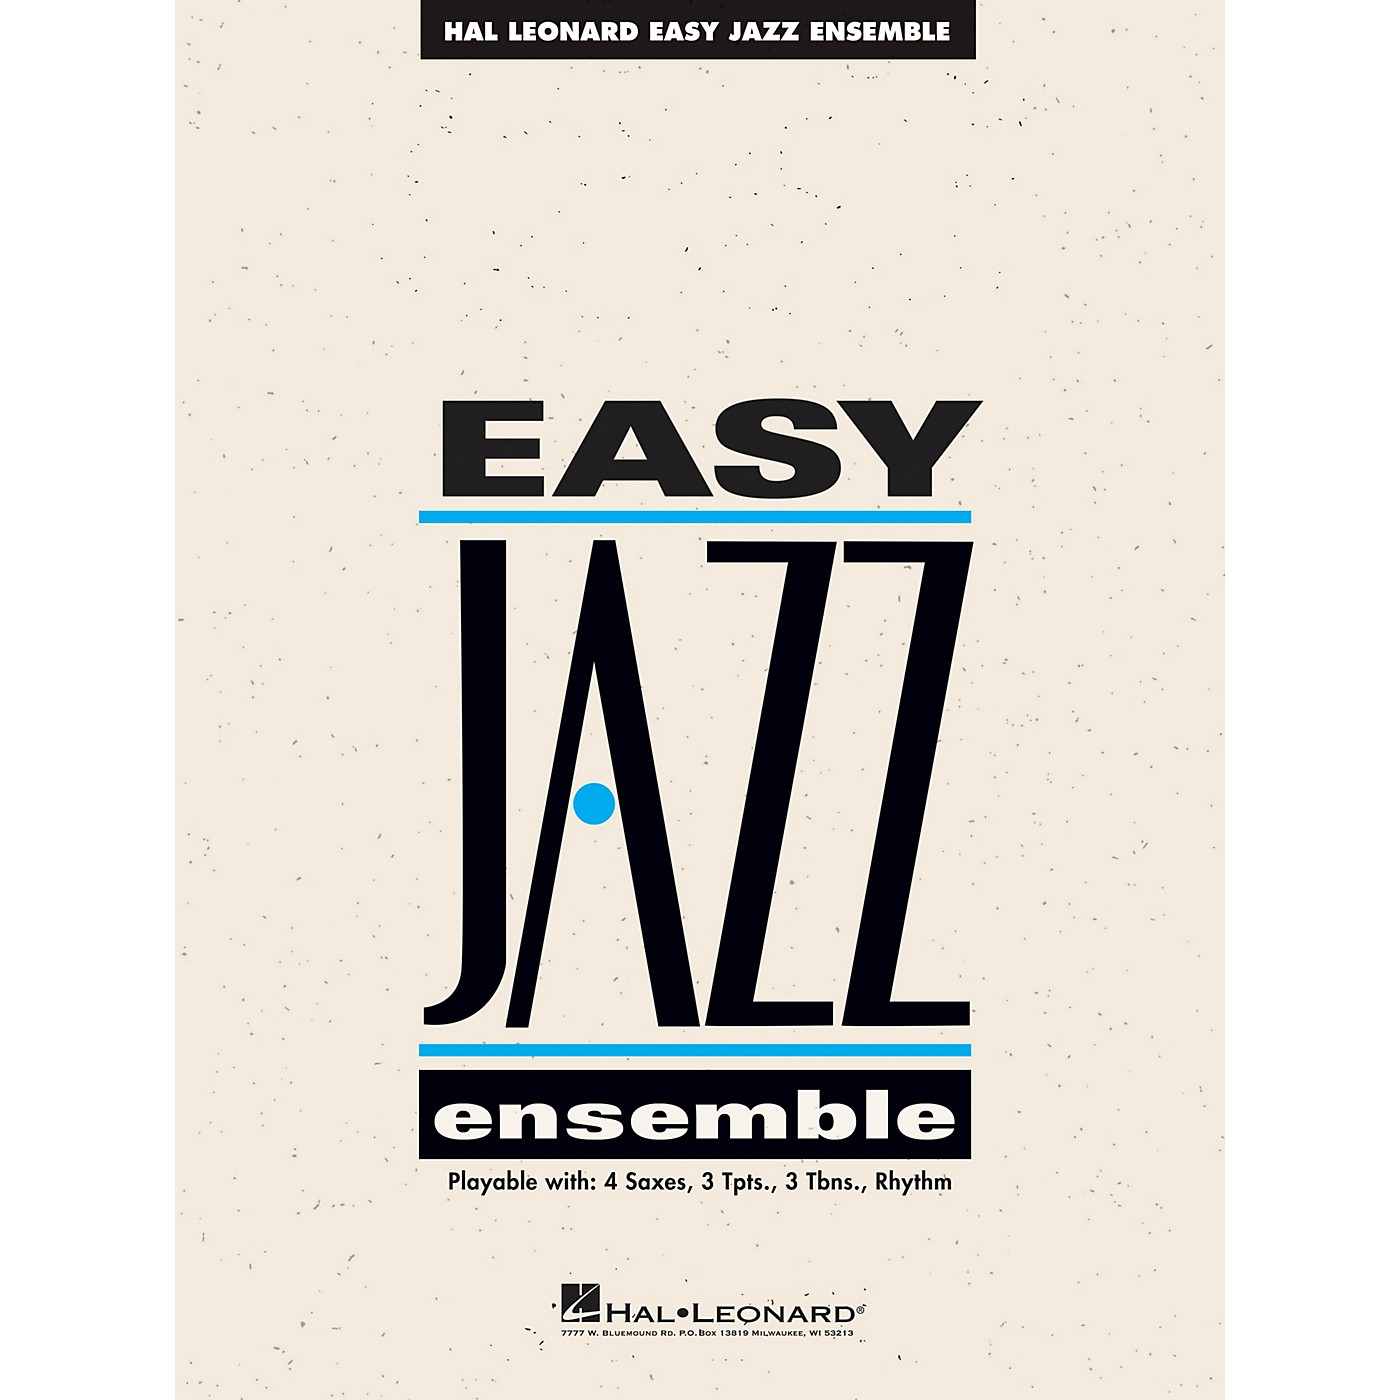 Hal Leonard The Best of Easy Jazz - Drums (15 Selections from the Easy Jazz Ensemble Series) Jazz Band Level 2 thumbnail